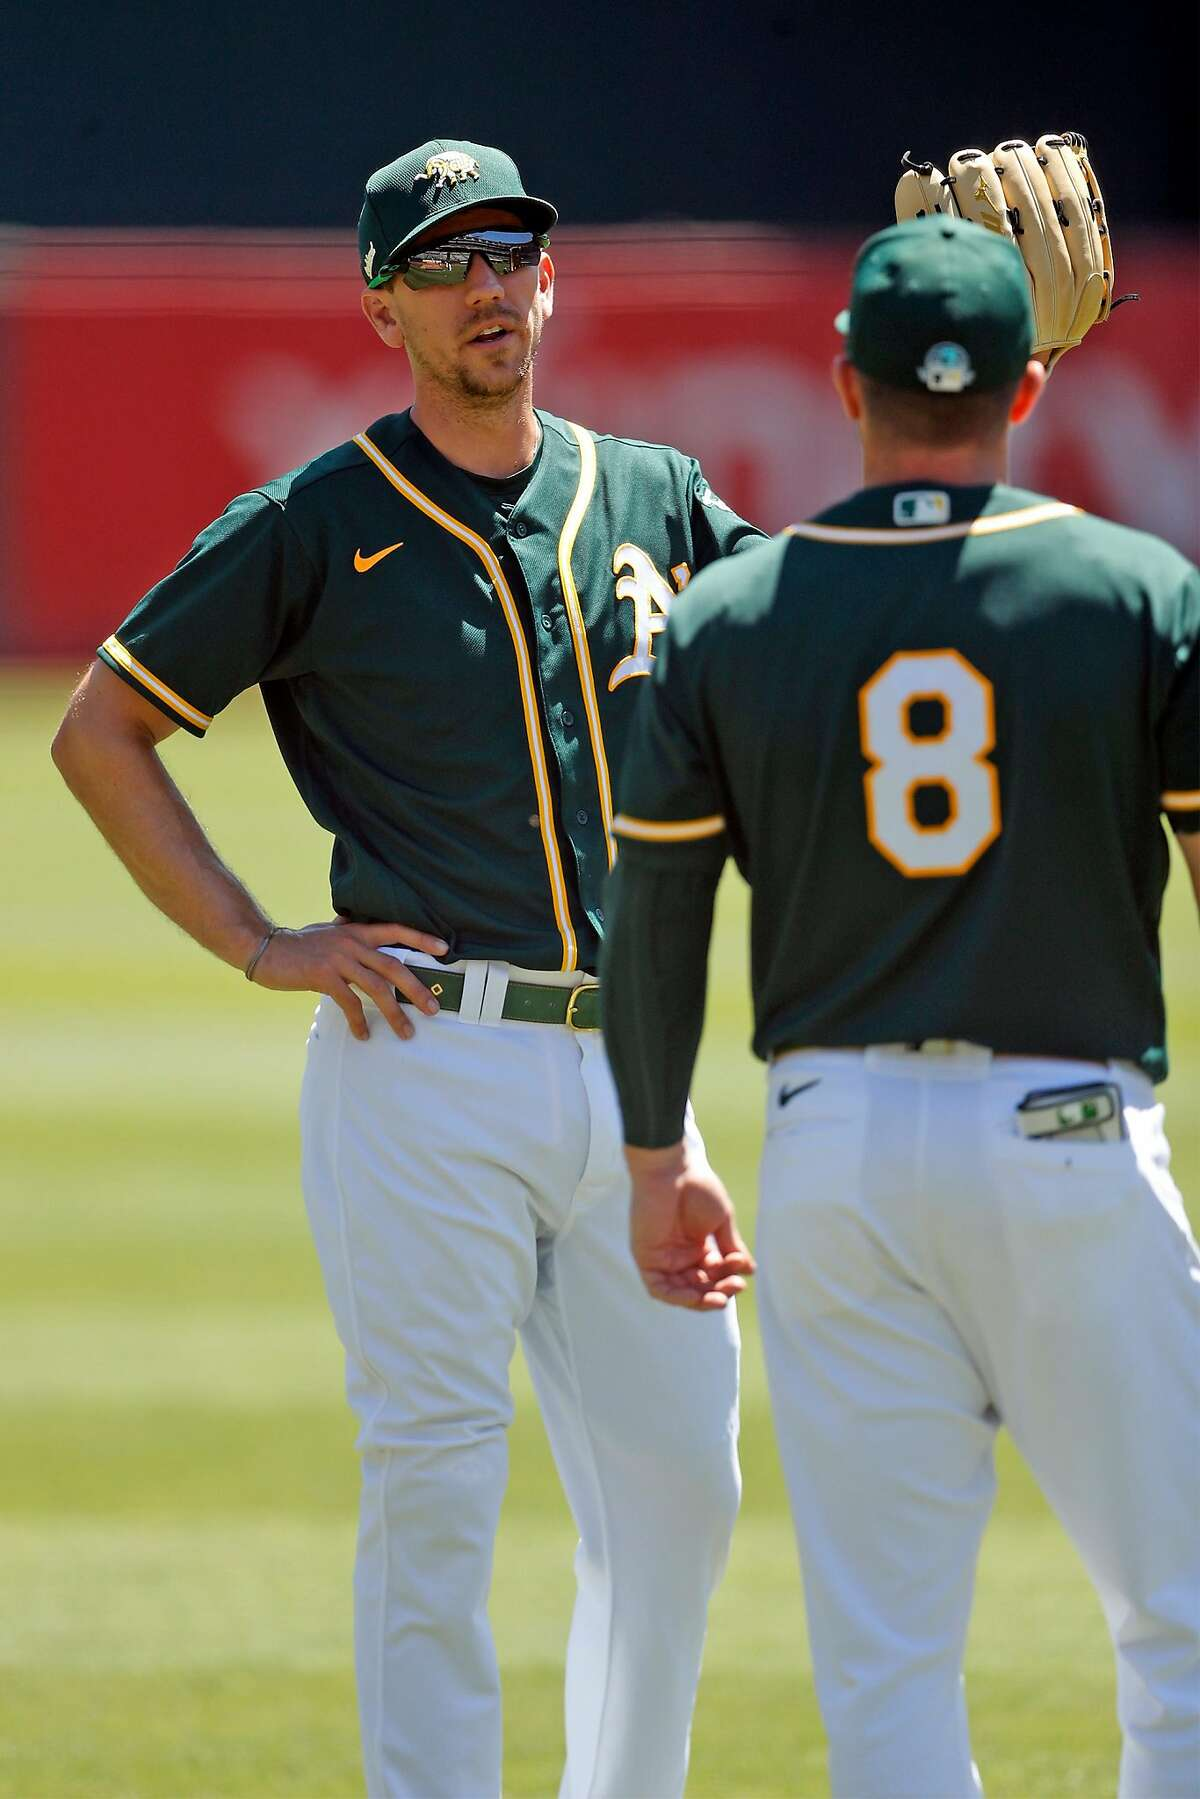 Oakland Athletics' Stephen Piscotty talks with Robbie Grossman (8) before simulated game at Oakland Coliseum in Oakland, Calif., on Sunday, July 12, 2020.